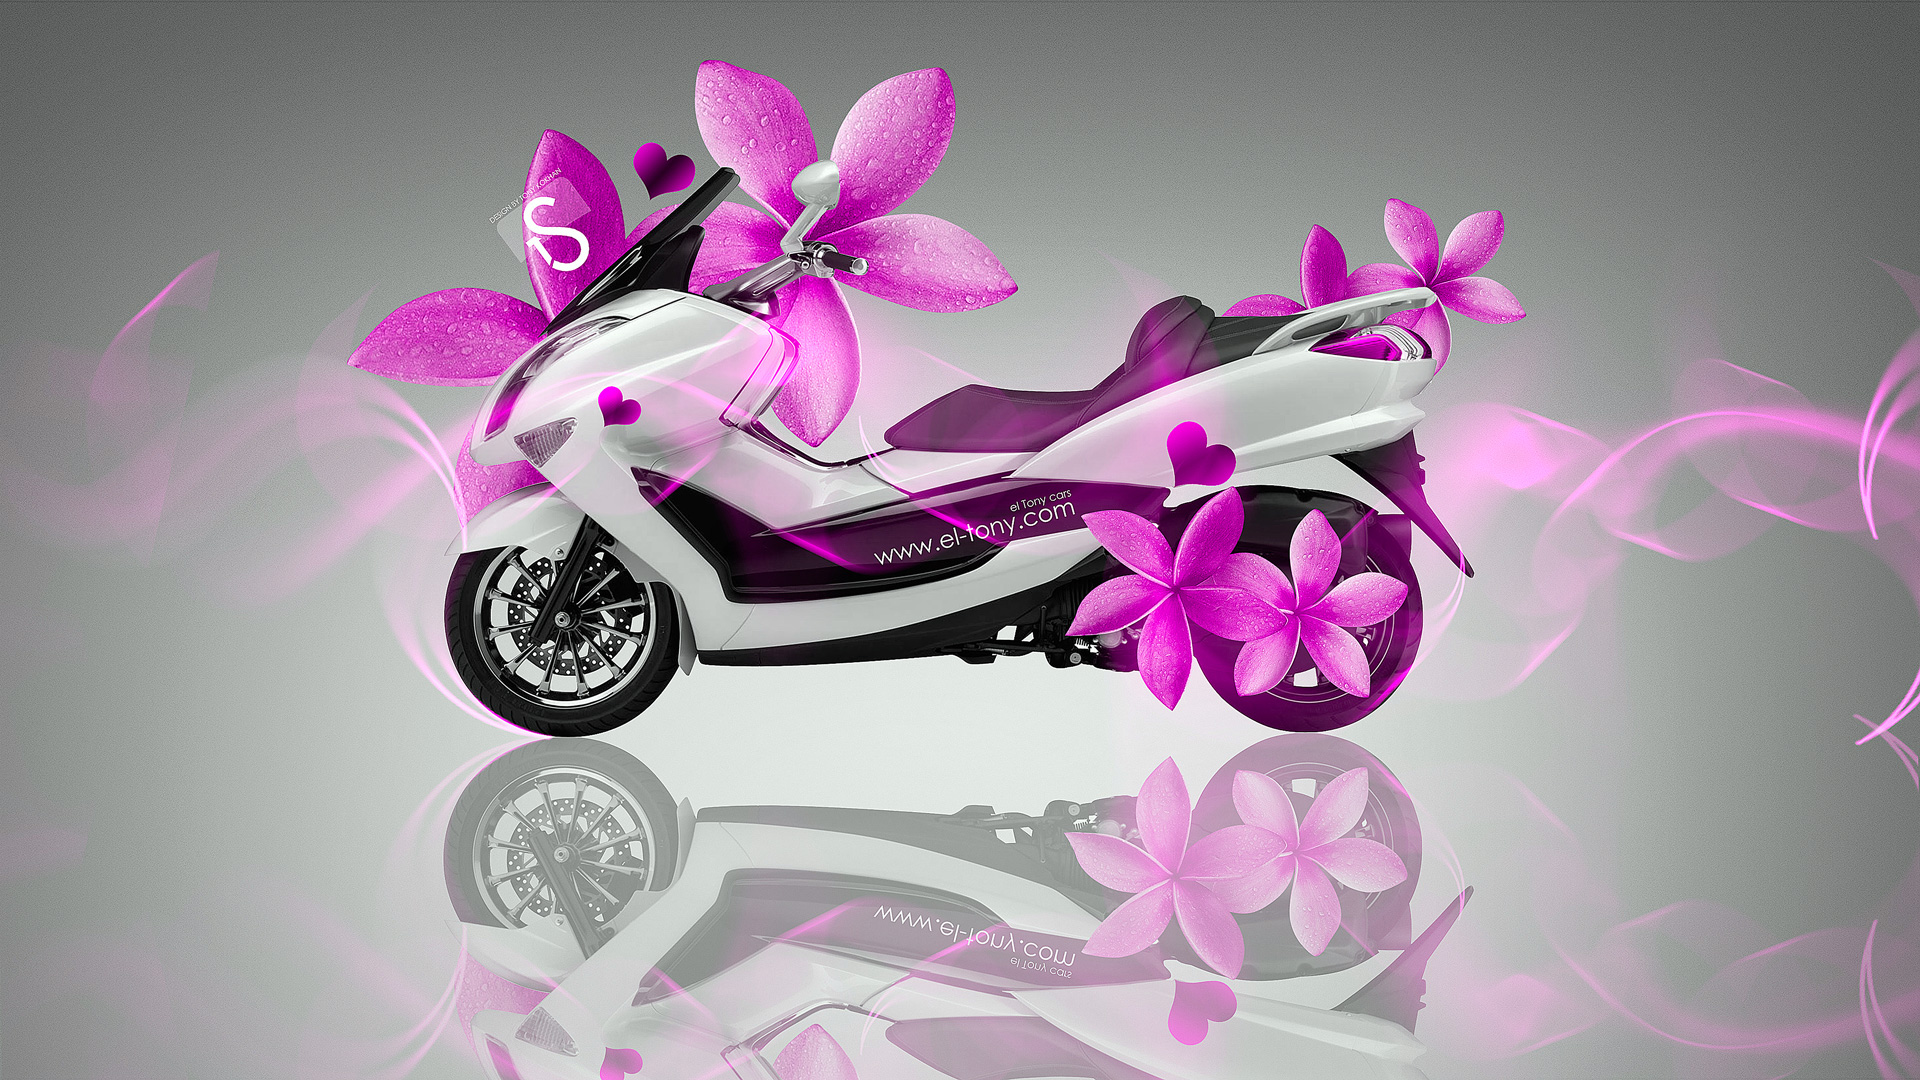 Merveilleux Mini Moto Pink Flowers Bike 2014 HD Wallpapers